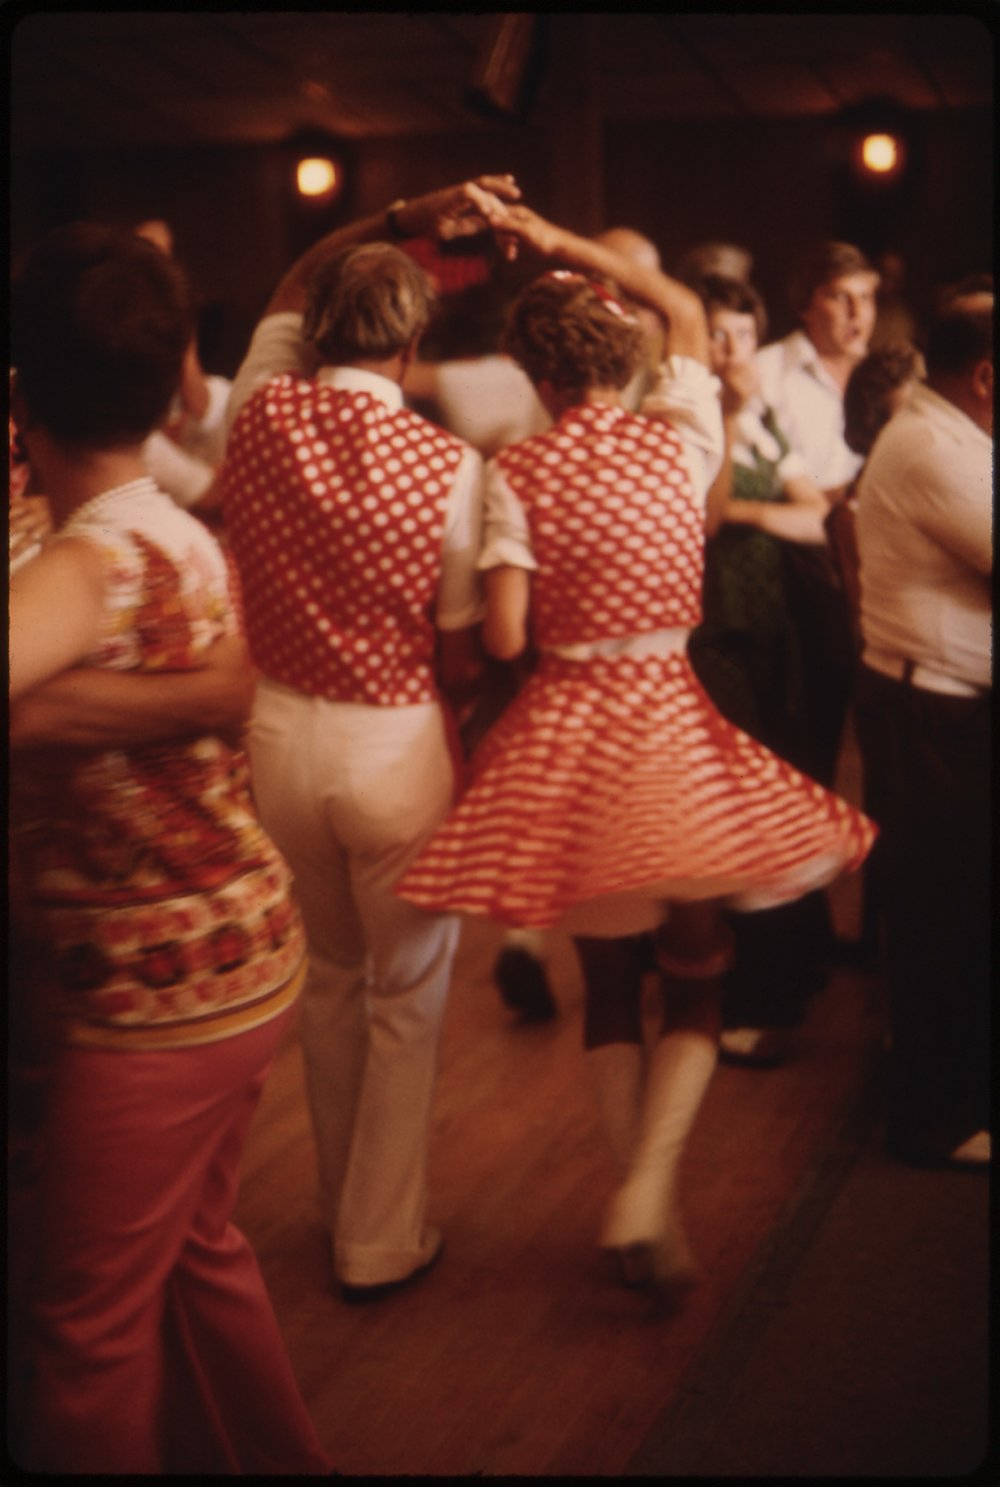 POLKA_DANCERS_AT_THE_GIBBON_BALLROOM_IN_GIBBON,_MINNESOTA_20_MILES_NORTH_OF_NEW_ULM._IT_WAS_HEADQUARTERS_FOR_GIBBON..._-_NARA_-_558286.jpg